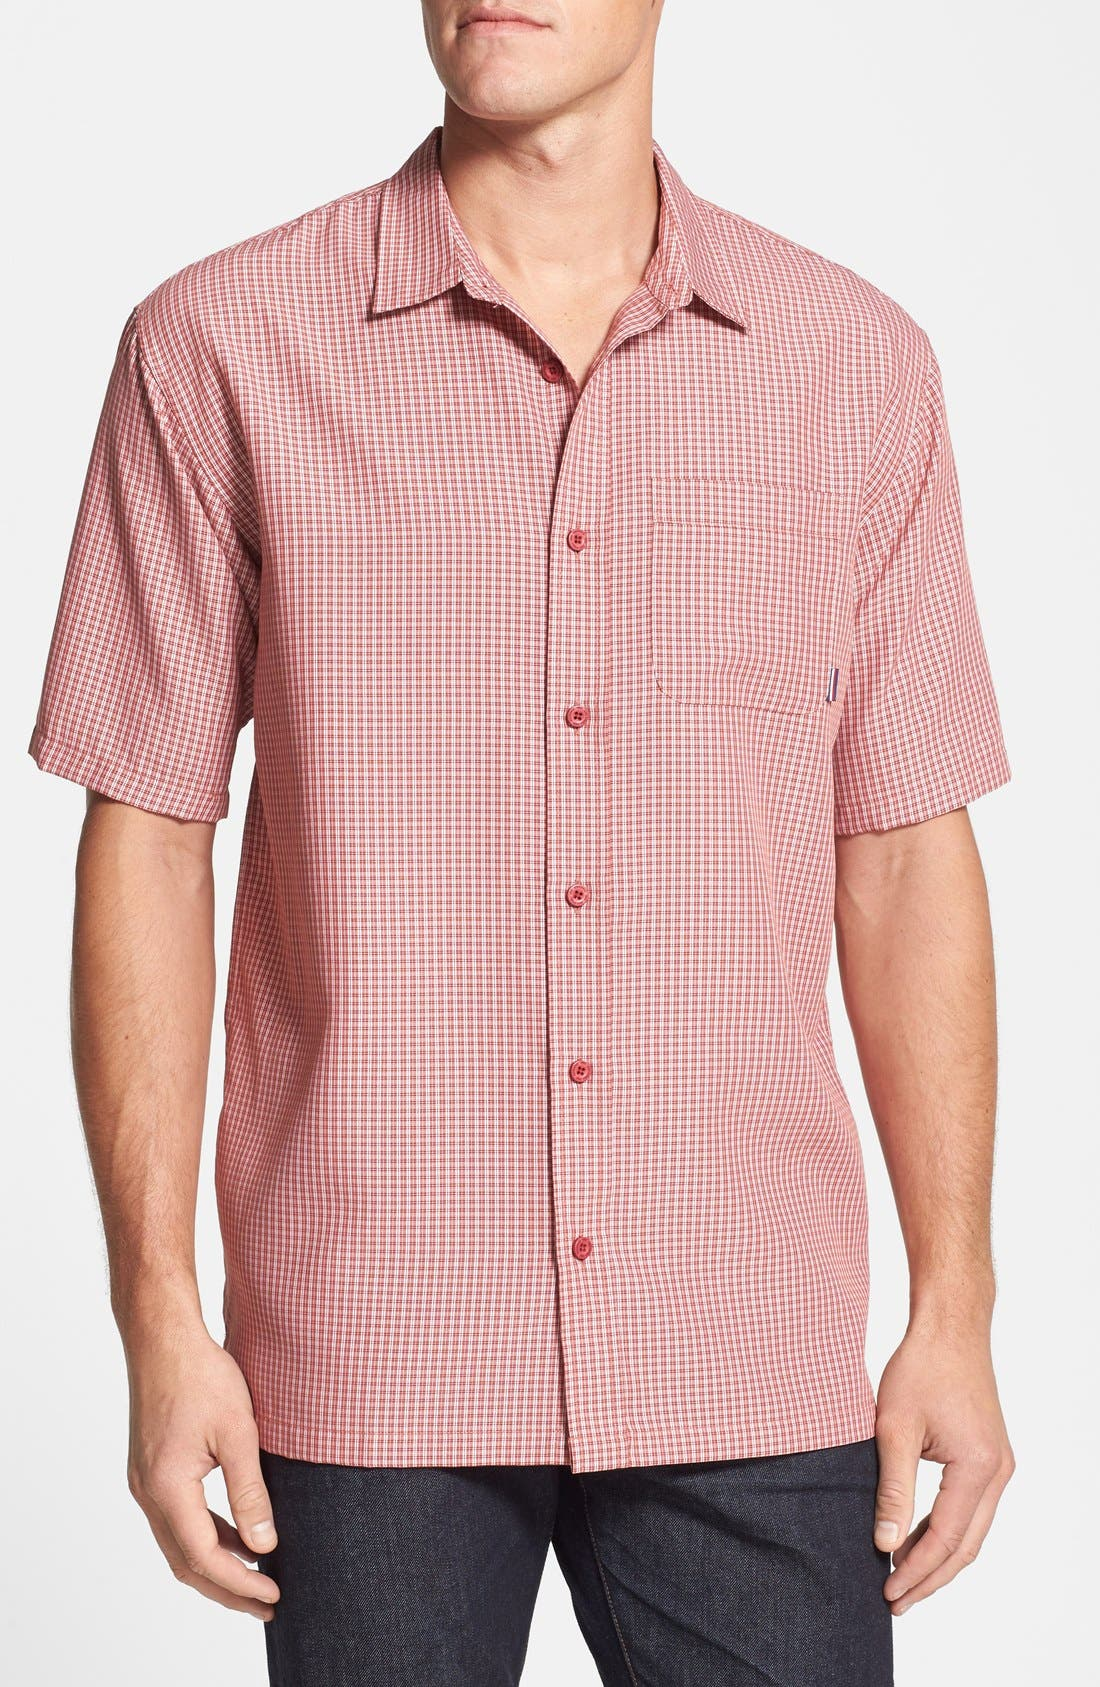 Main Image - Jack O'Neill 'Ford' Standard Fit Short Sleeve Woven Sport Shirt